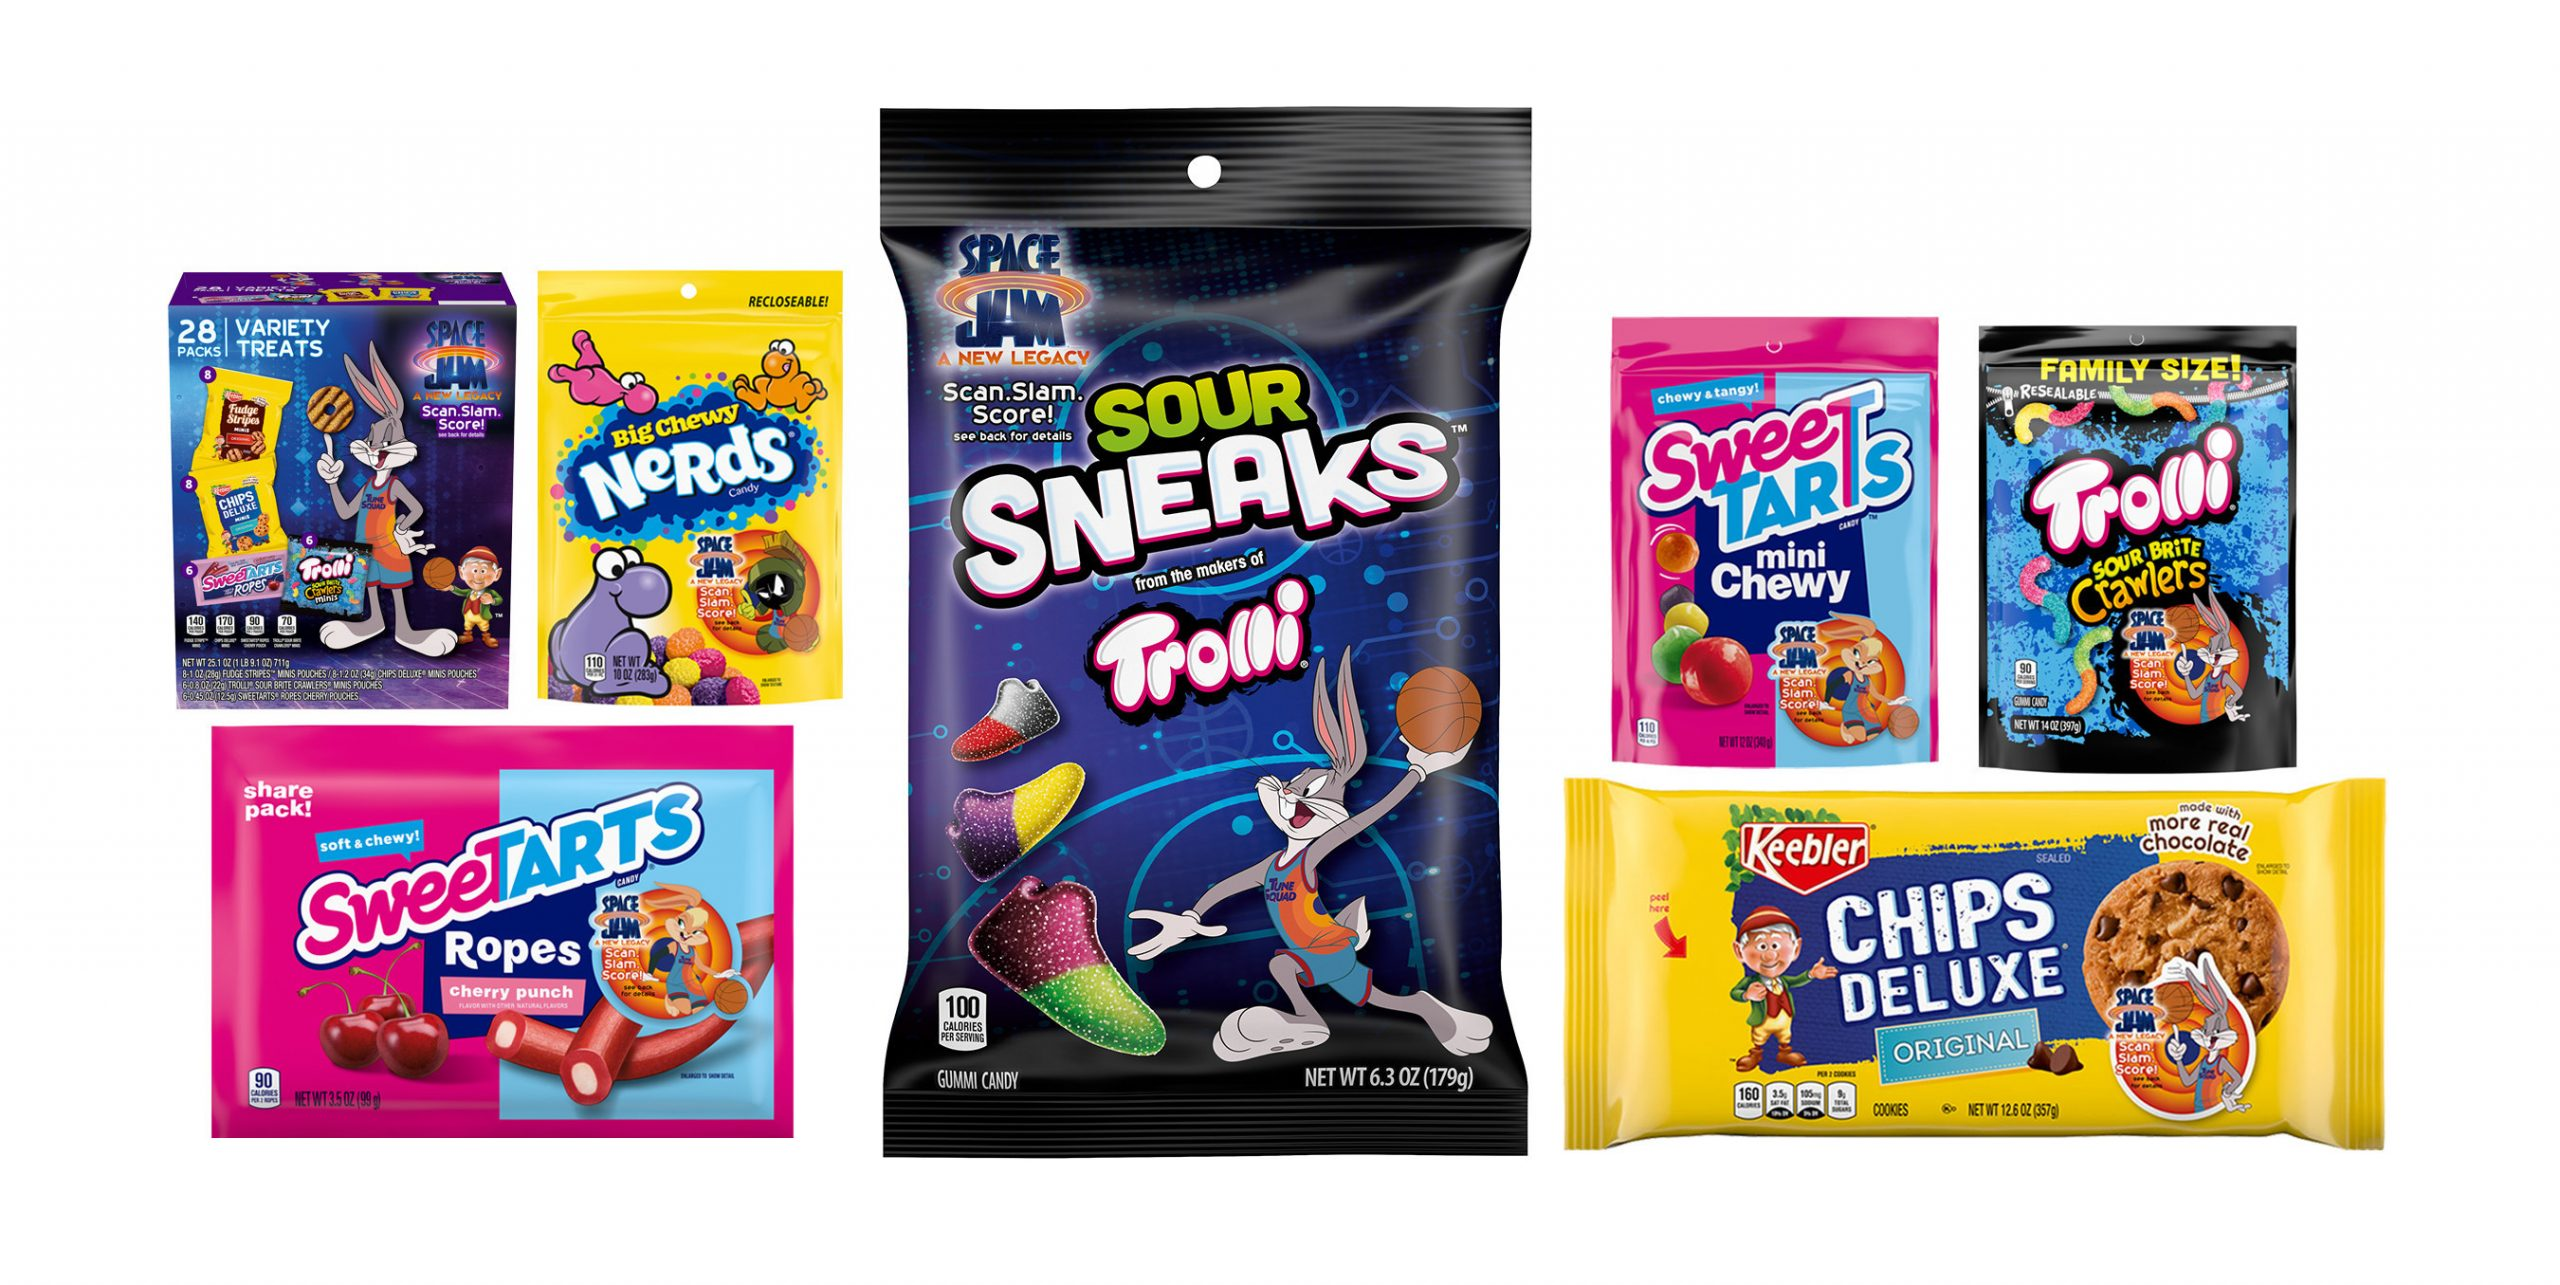 """Ferrara Snack Maker Launches """"Space Jam"""" Limited-Edition Packaging"""